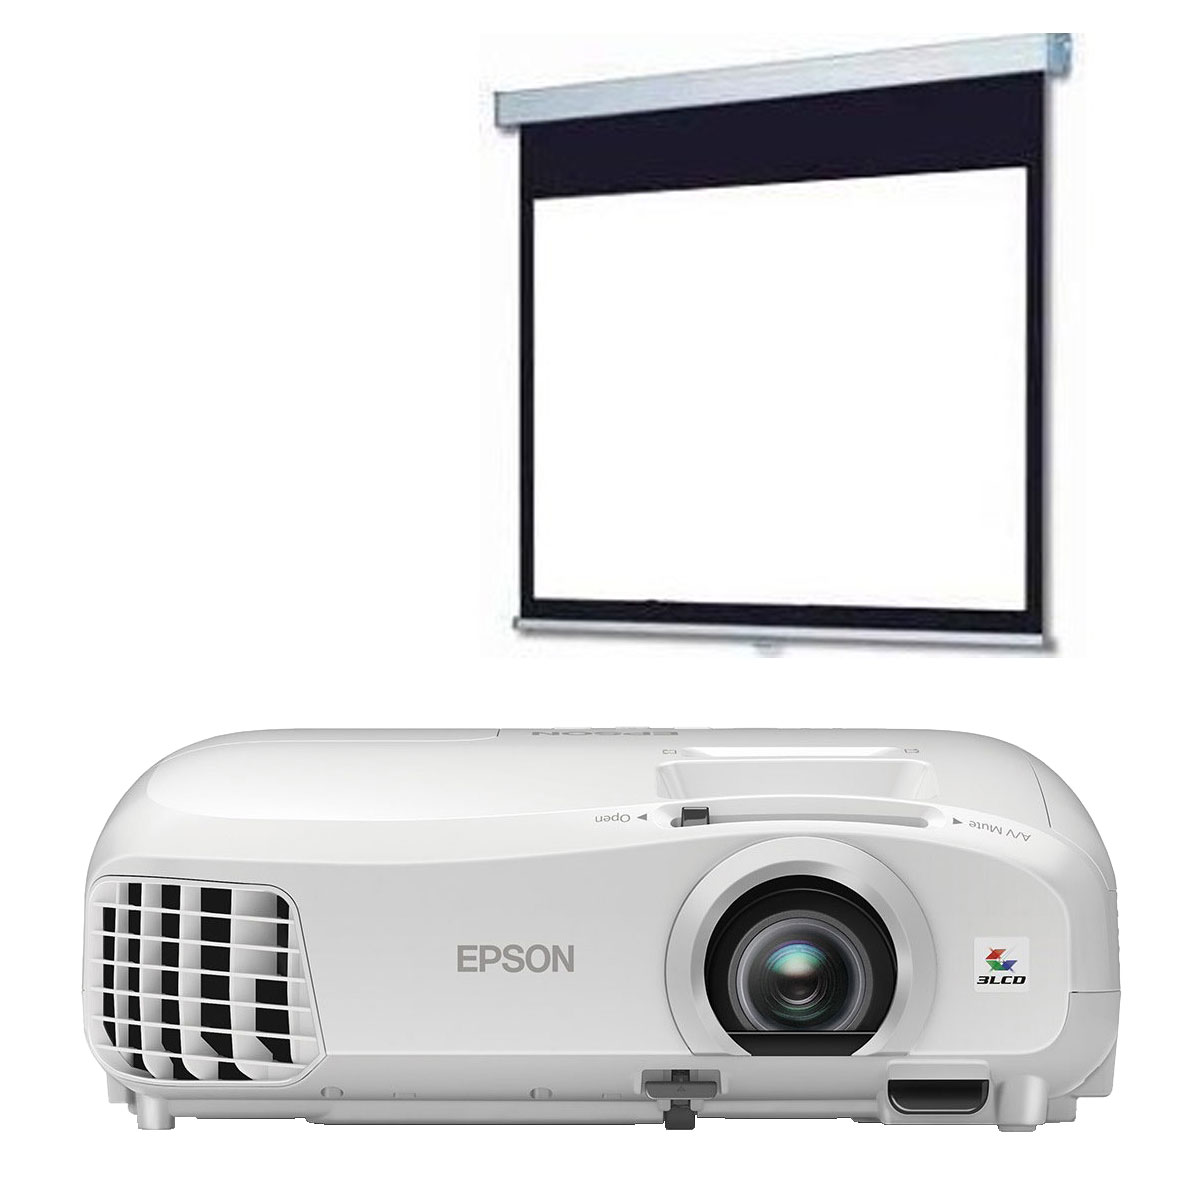 Videoprojecteur full hd Hd video hd video hd video hd video